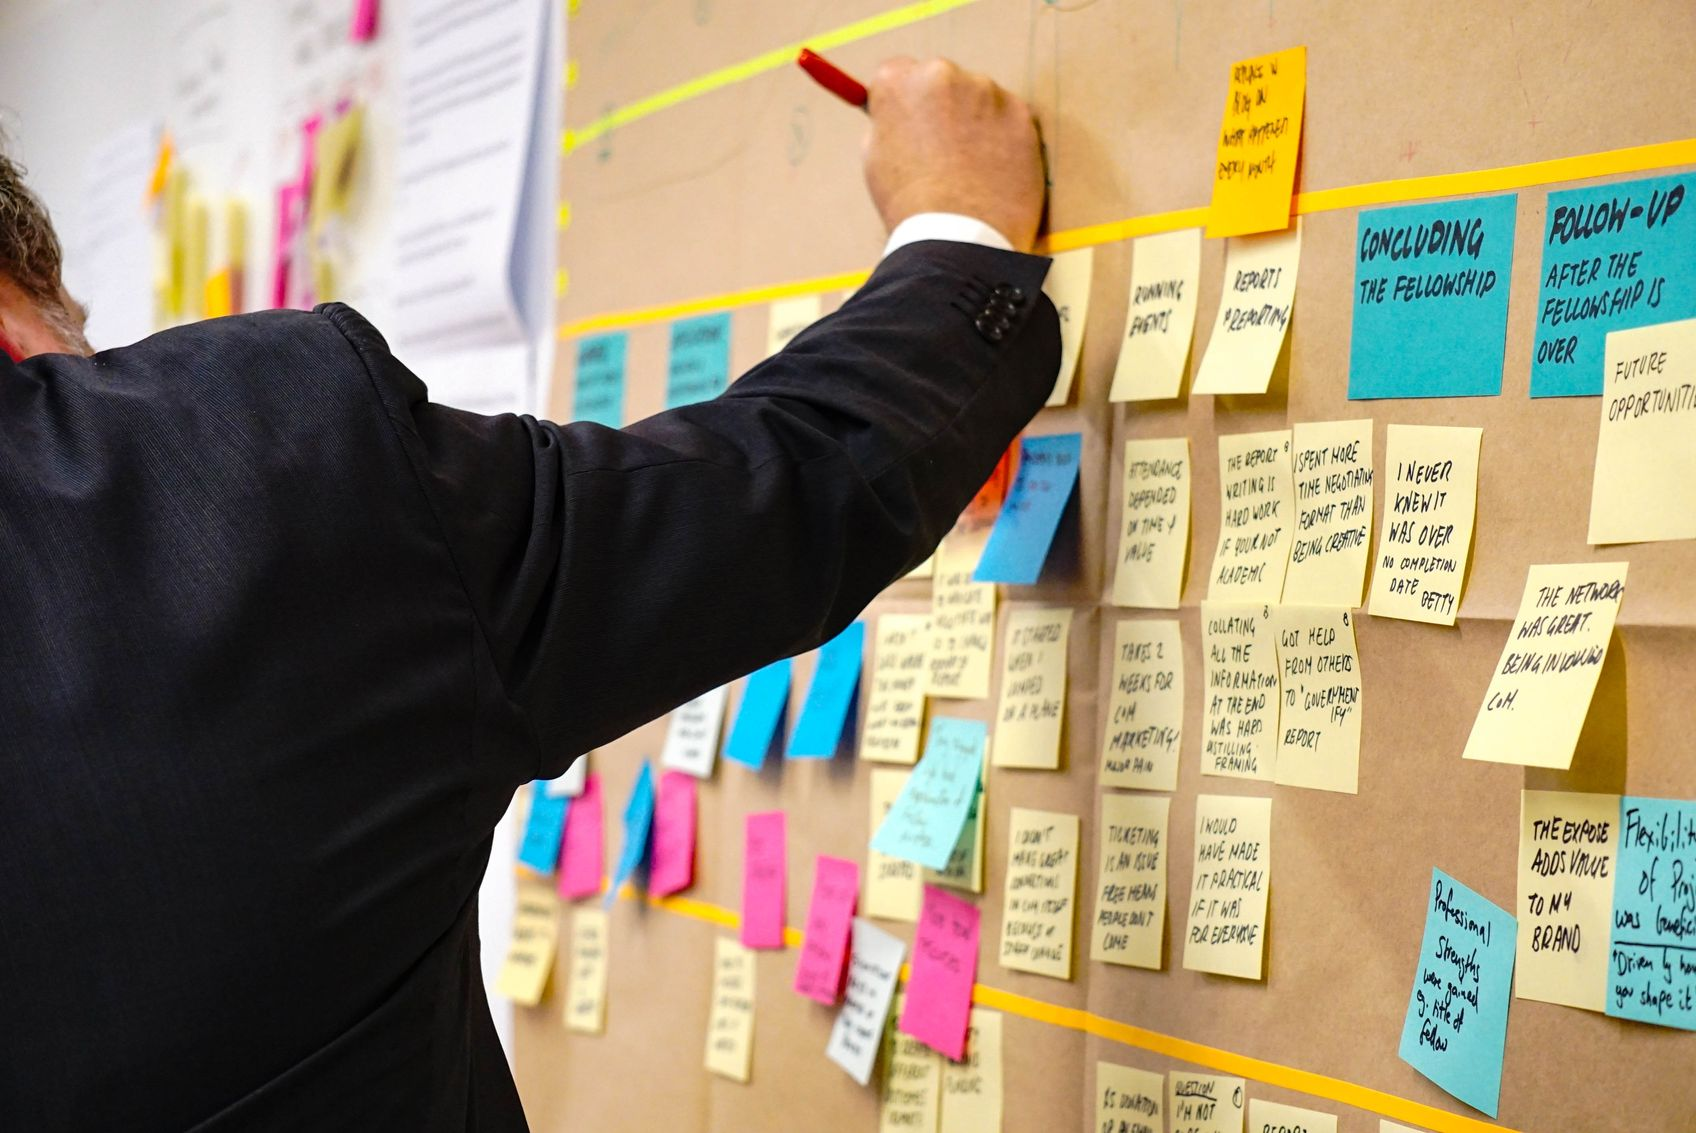 Man in suit writing on a board pinned with multiple post-it notes